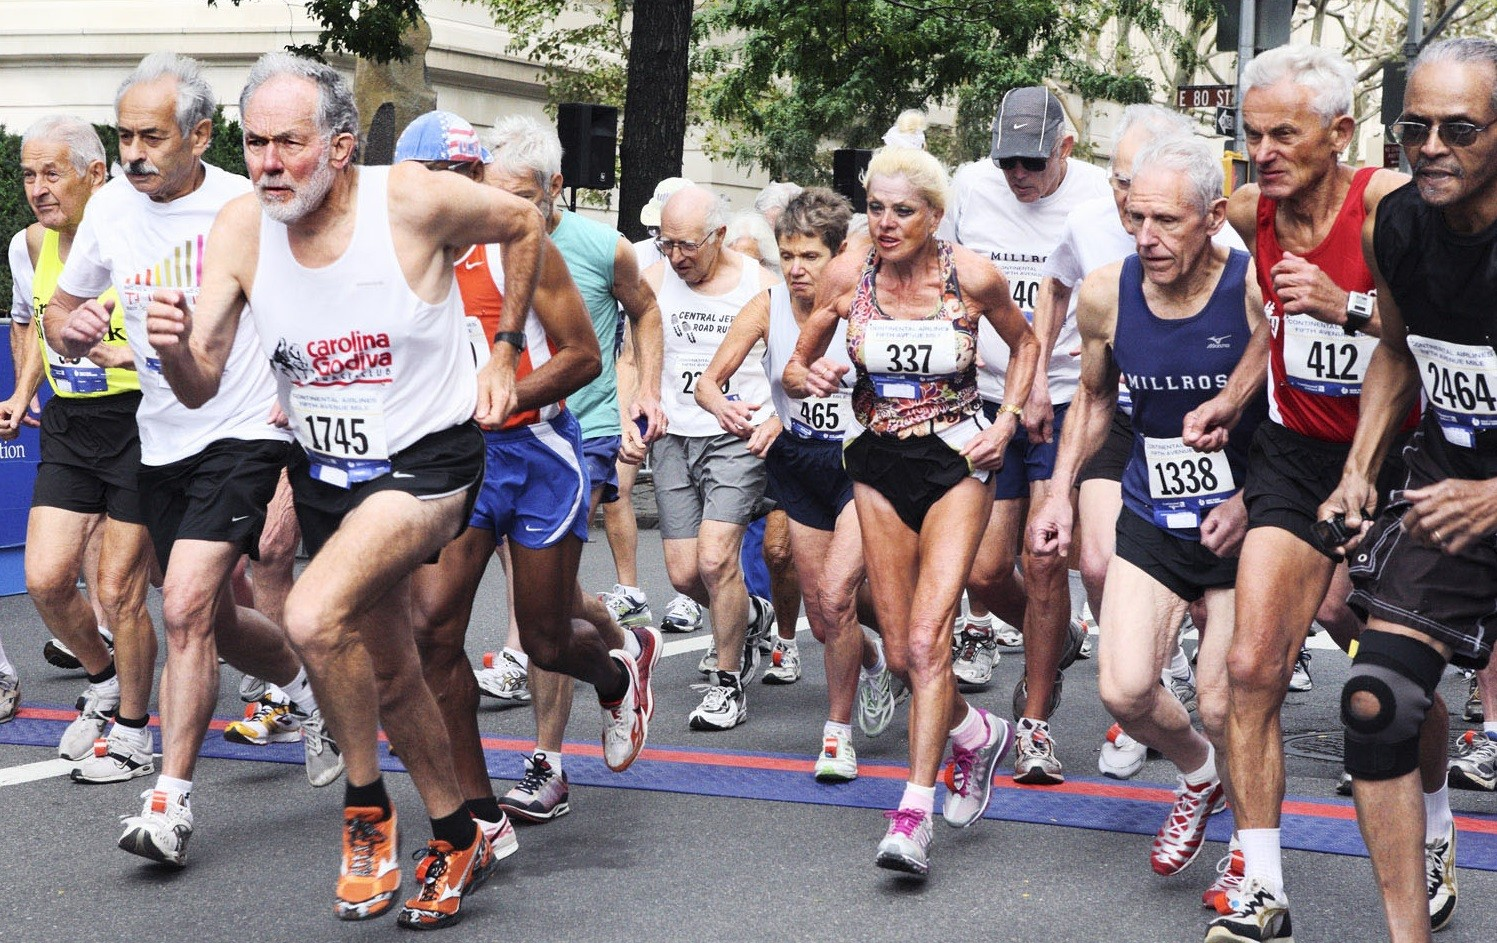 Marathon runners have less arthritis than non-runners